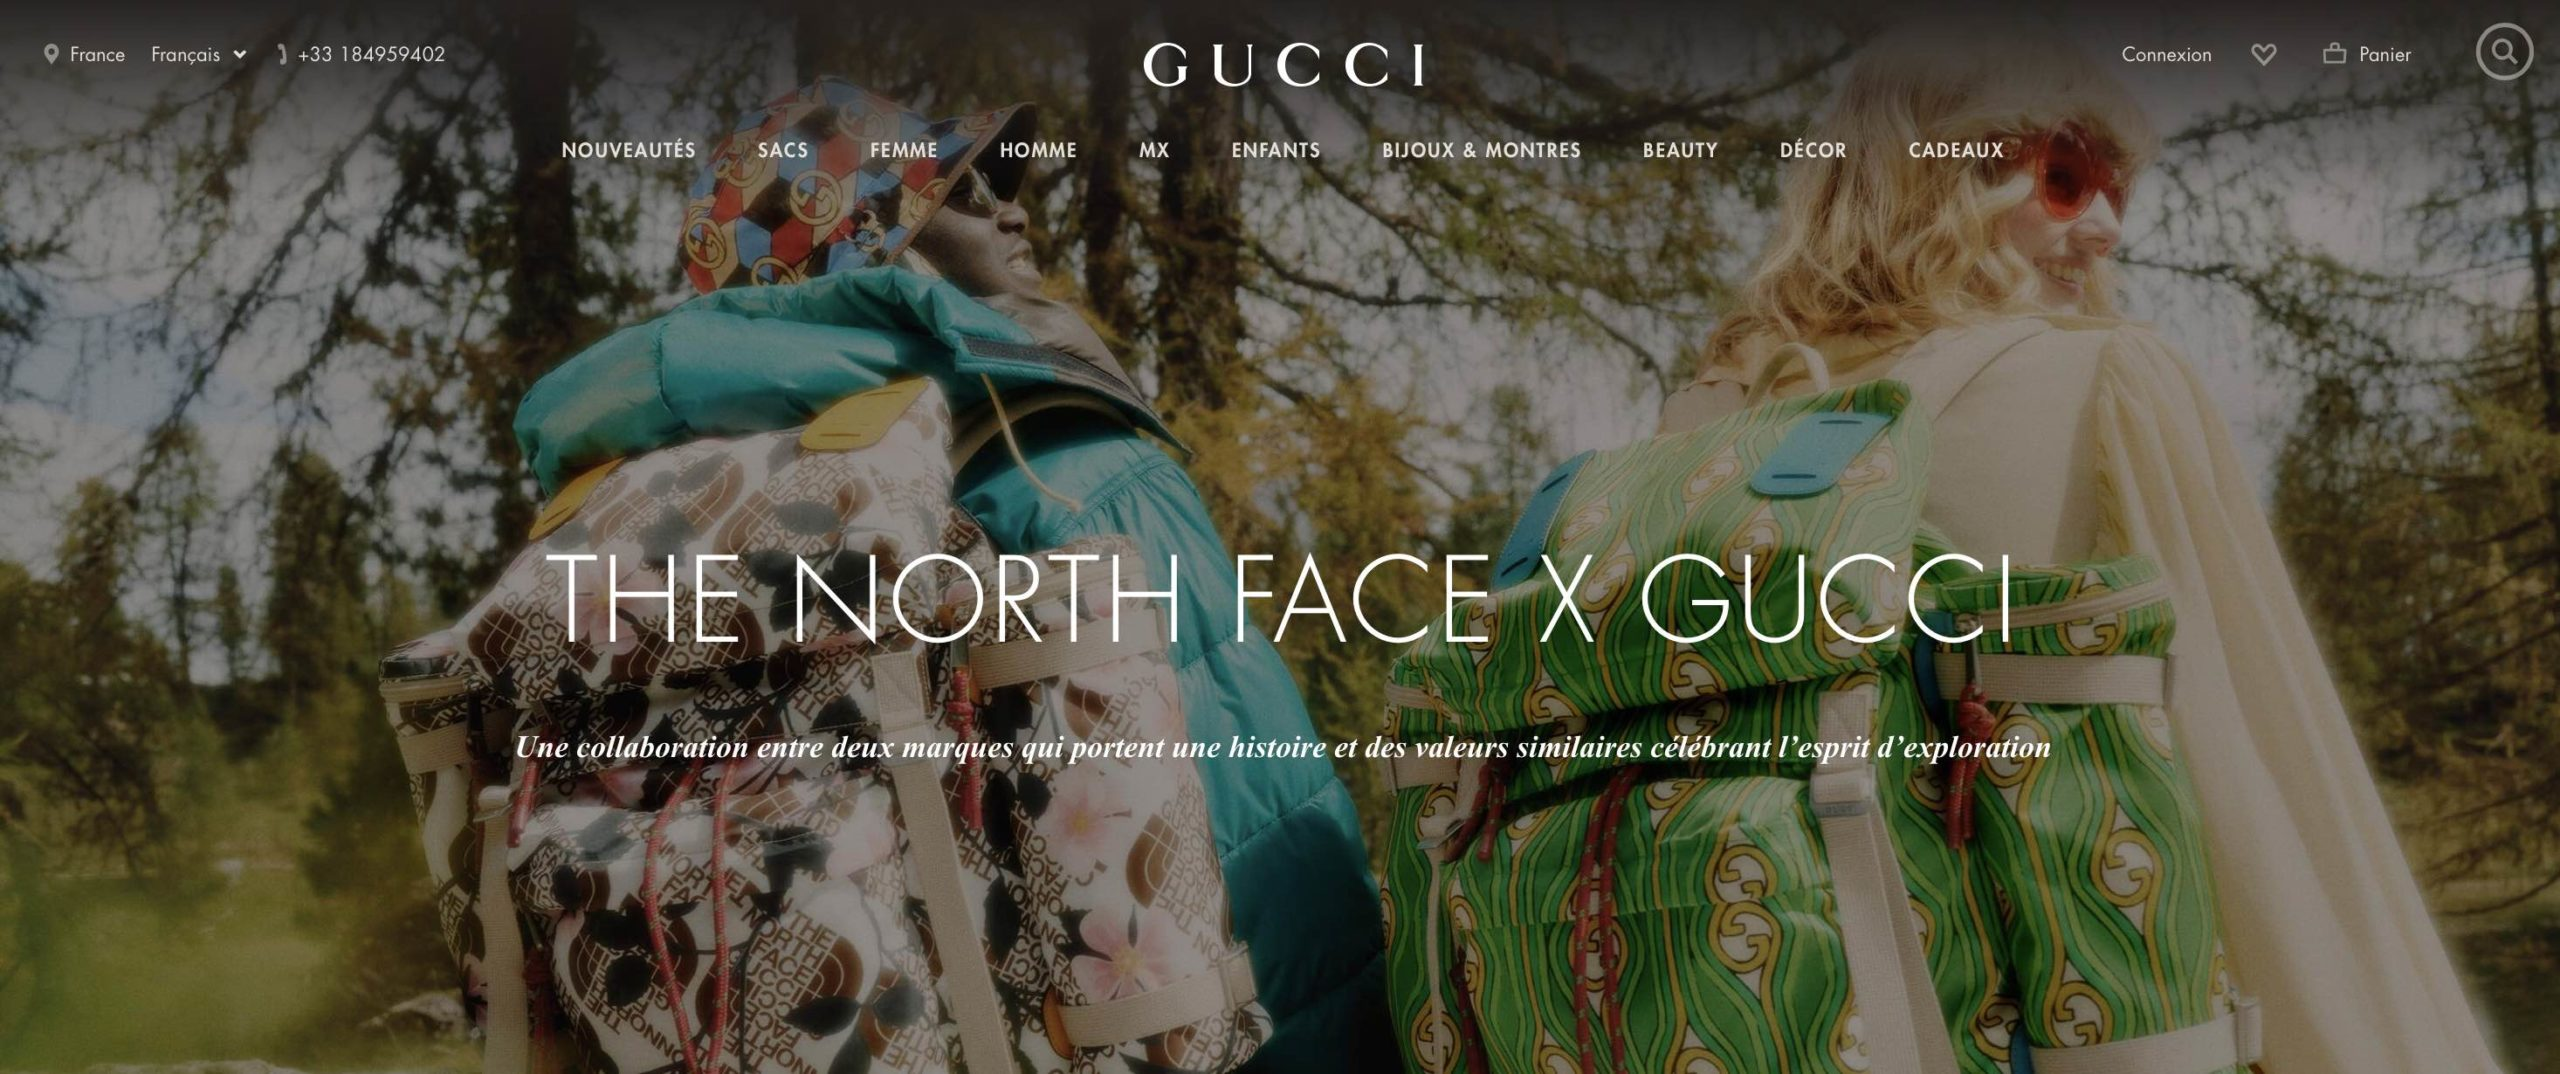 collab marques Gucci x The North Face